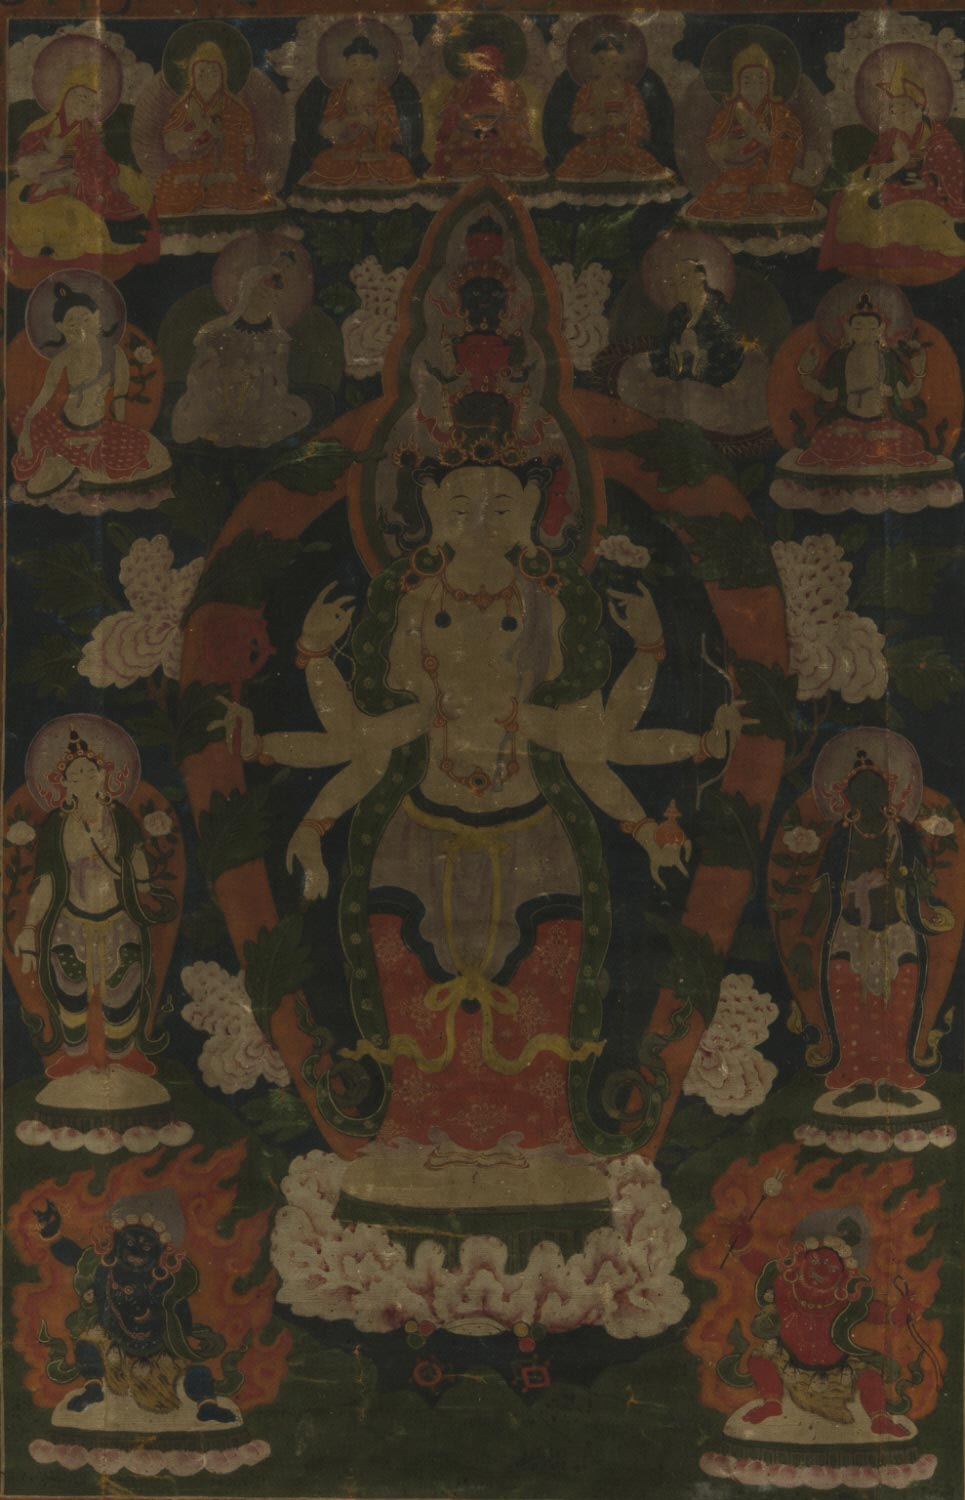 Ekadasa-Avalokiteshvara Surrounded by Forms of Avalokiteshvara